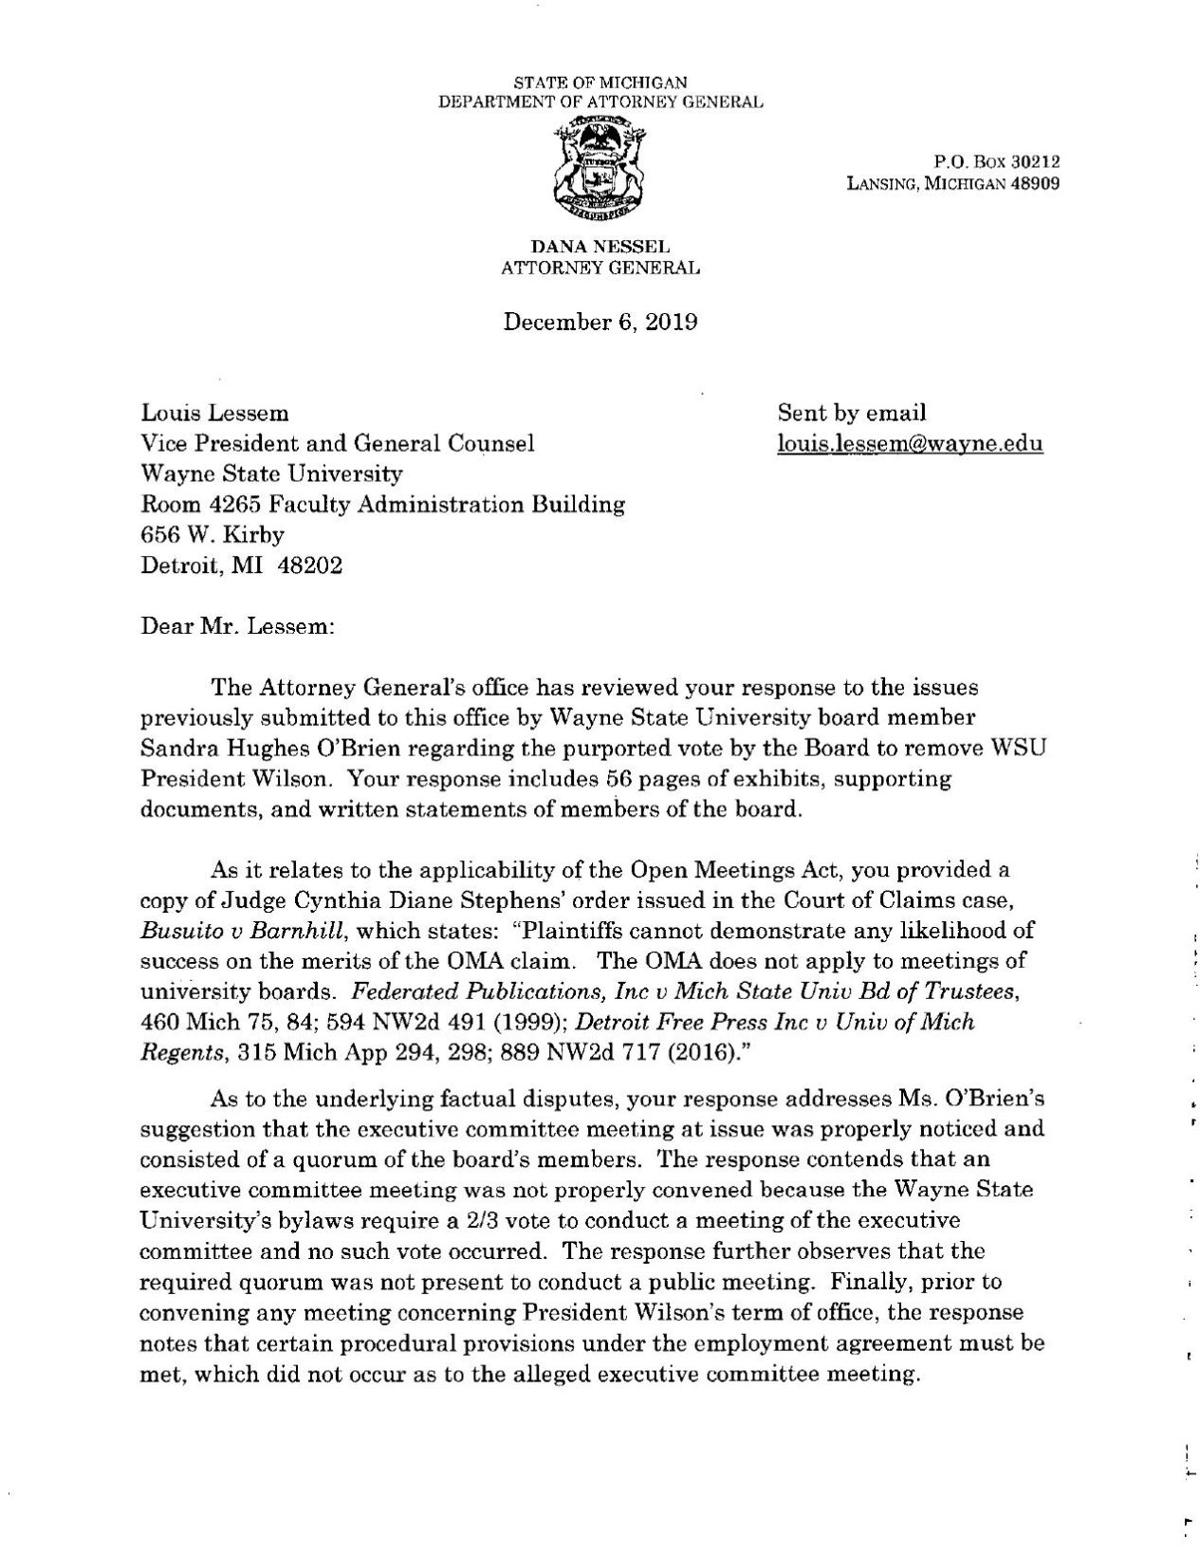 Letter from attorney general's office